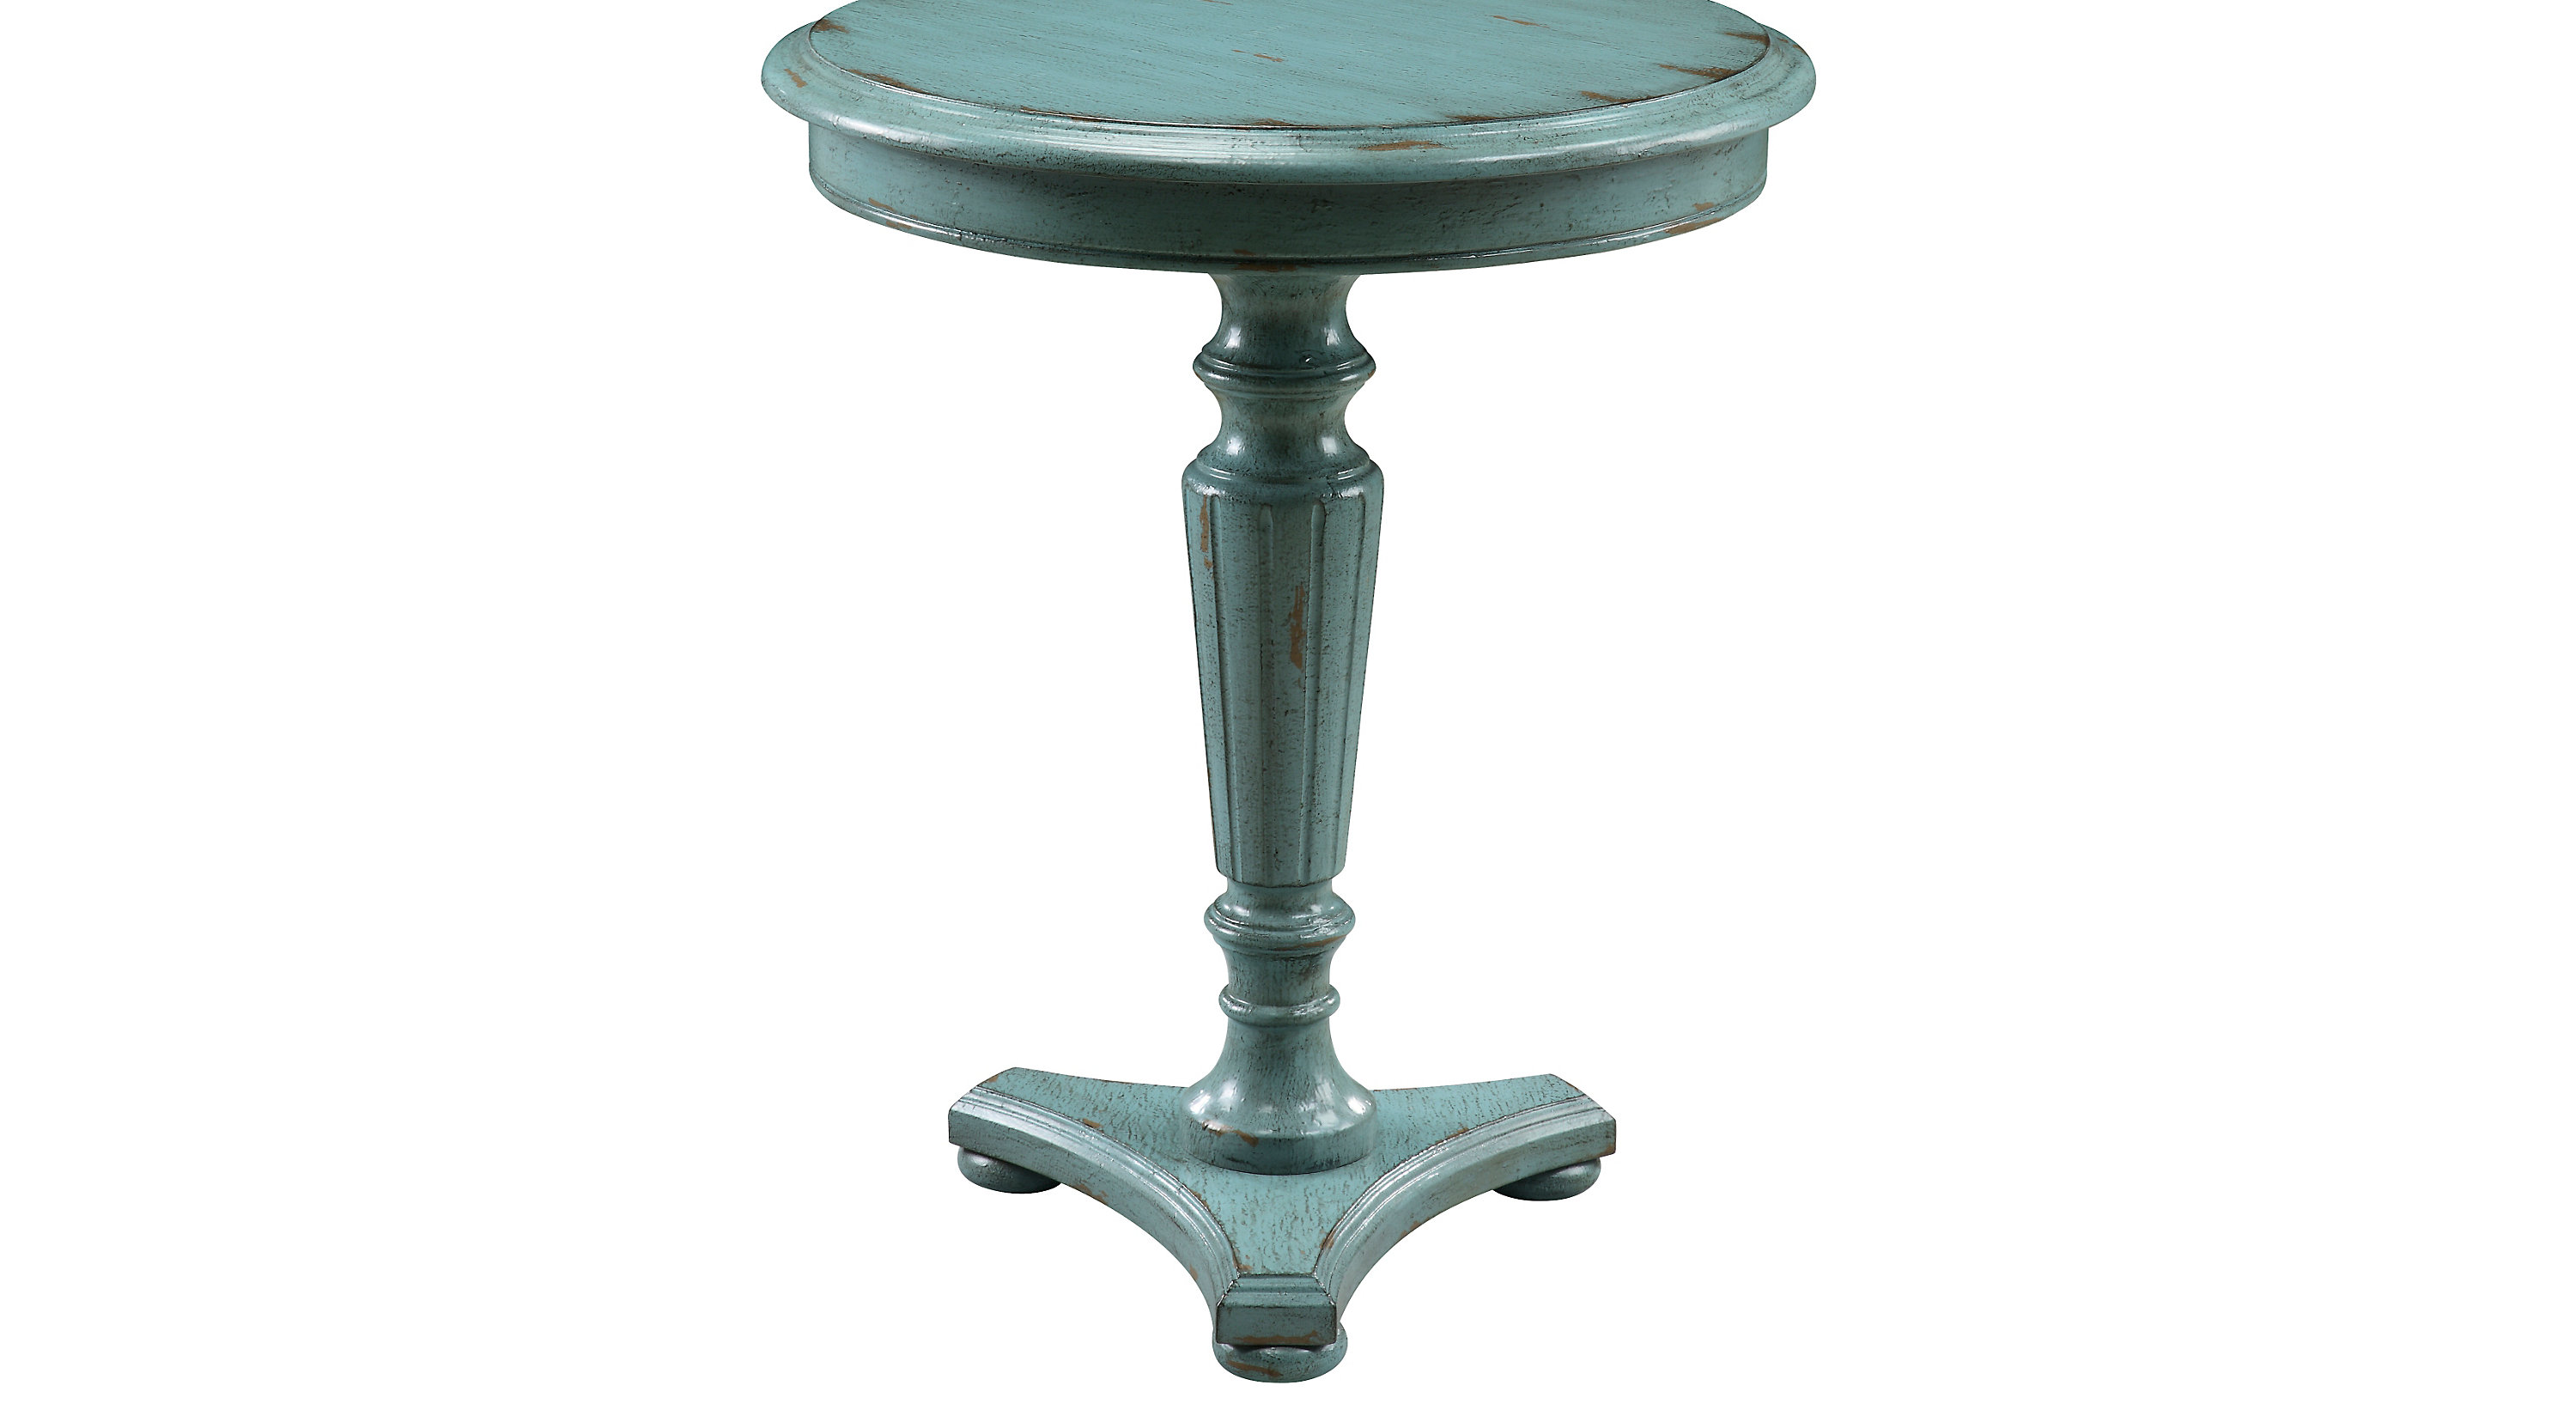 traditional accent tables classic side table styles nunnelly blue tipton round drinking glass sets cordless lamps pottery barn bright colored chairs mahogany industrial coffee uma